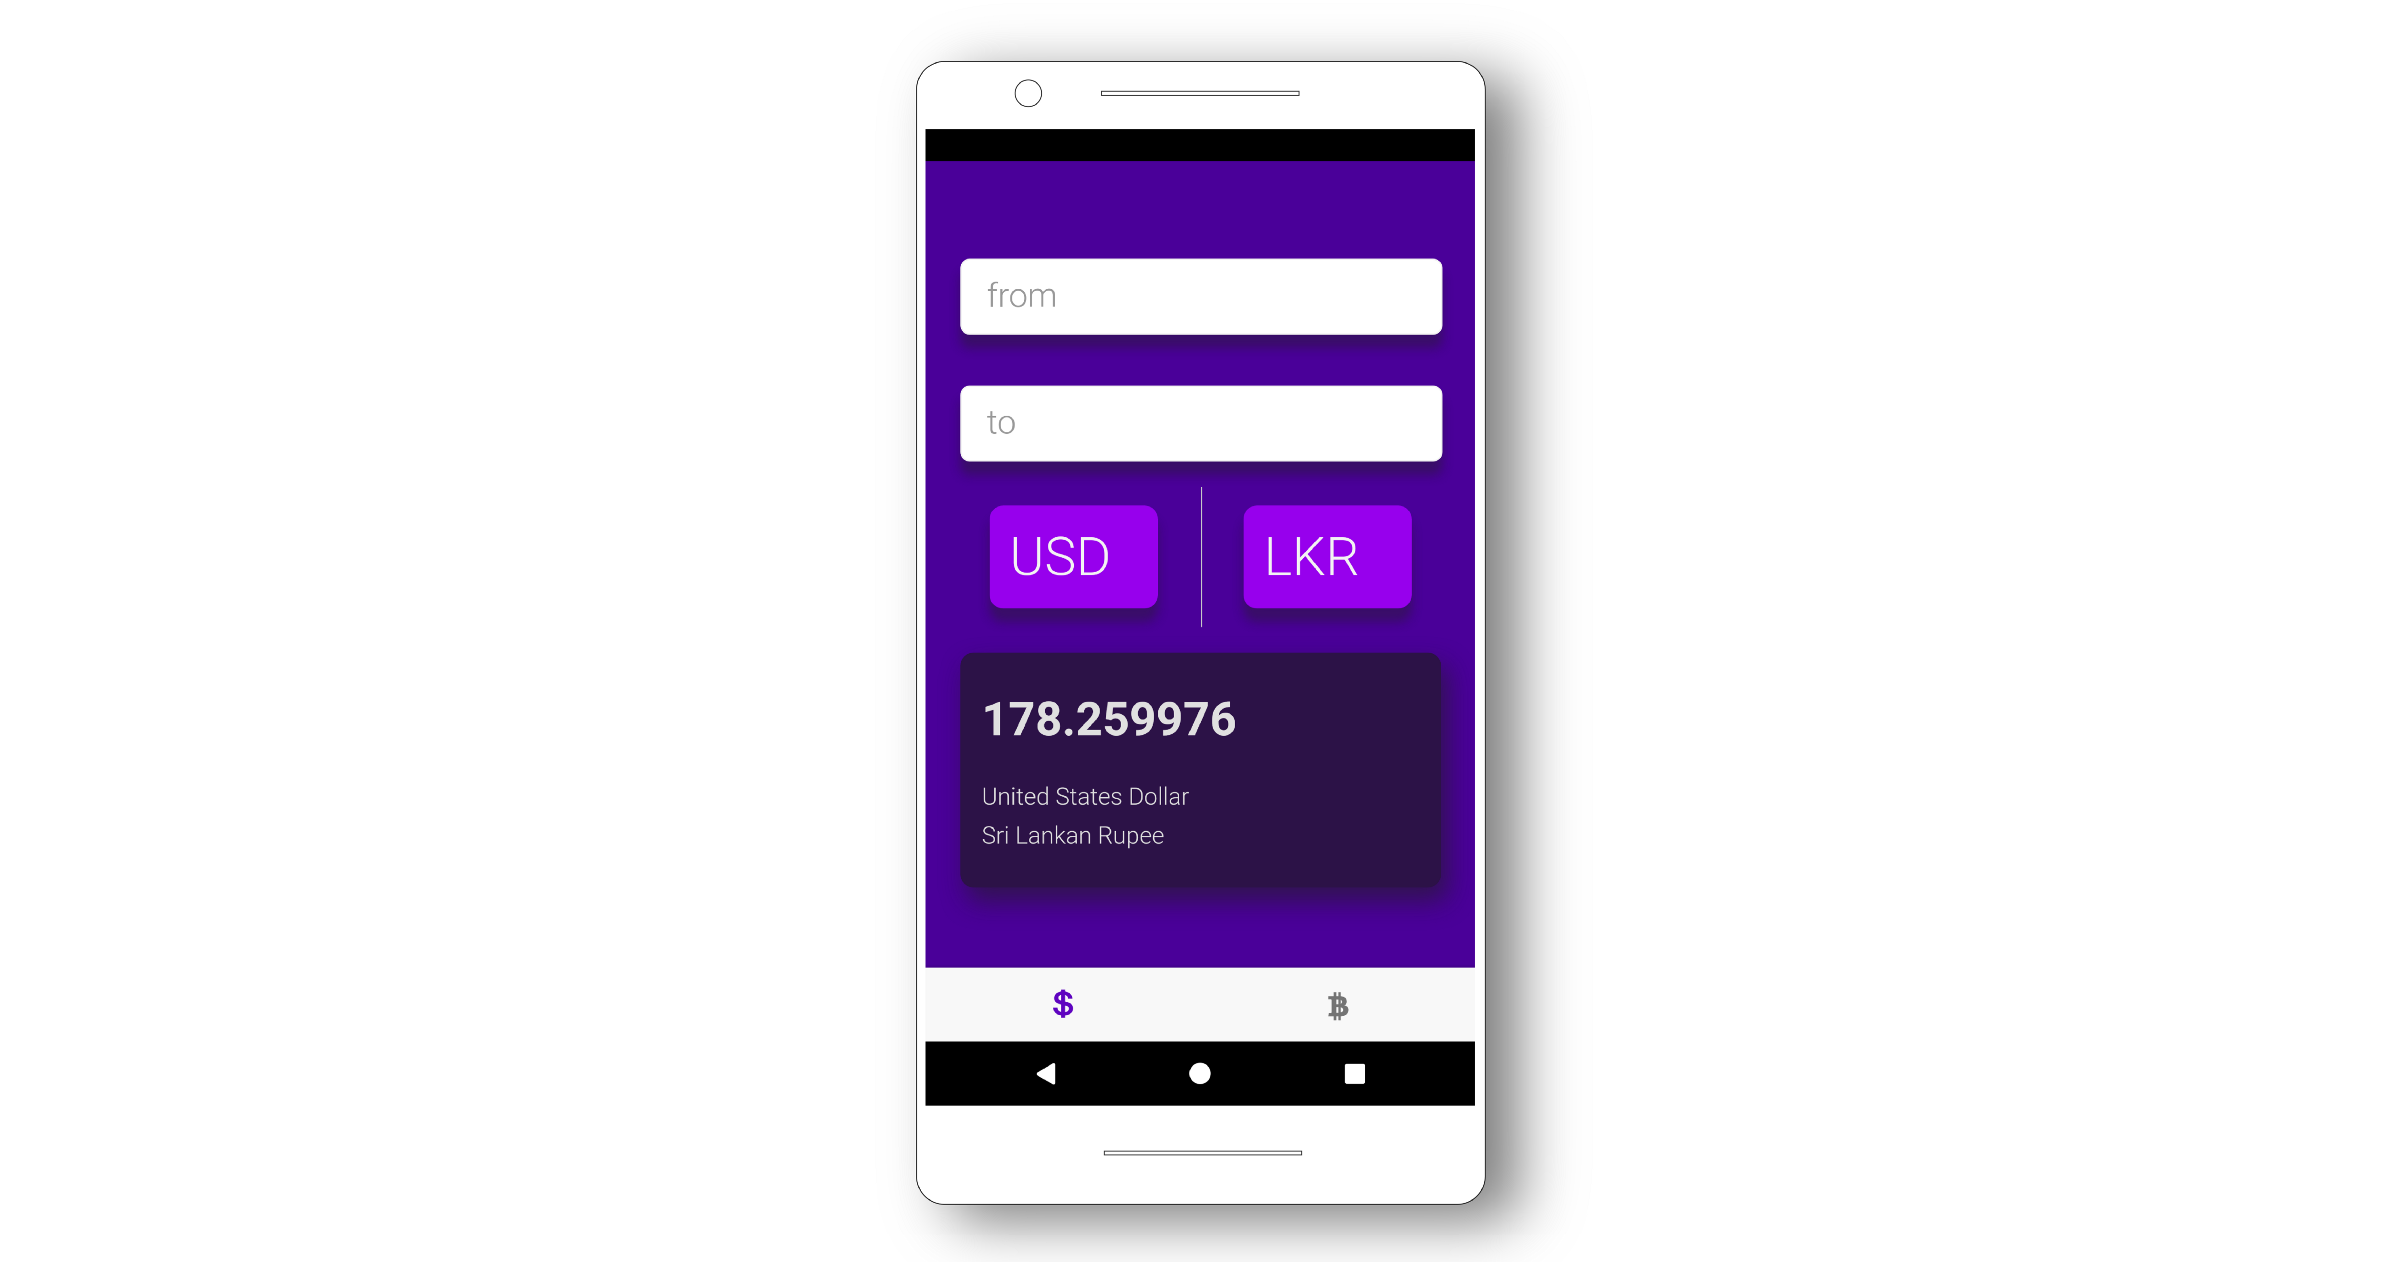 Ionic Currency Converter - By Thivagar Mahendran